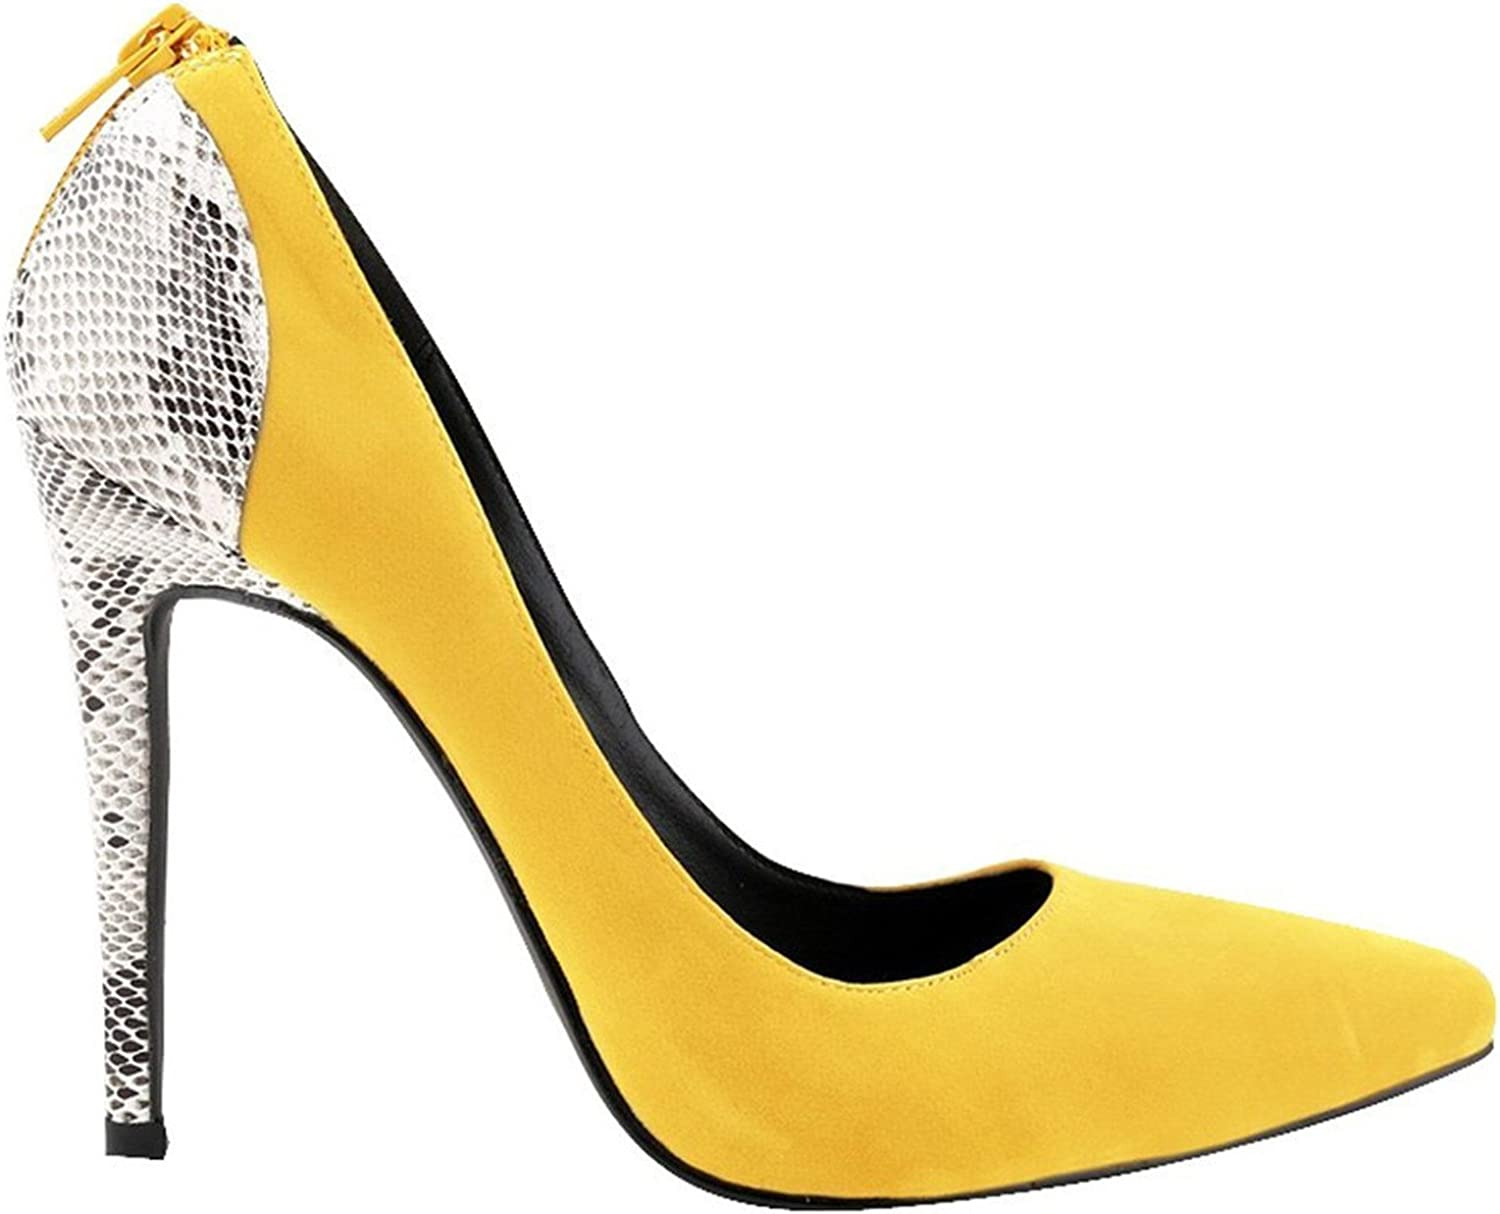 WANabcMAN Comfortable Women's Suede Pointy Stiletto High Heels Party Pumps Weeding shoes Yellow42 M EU